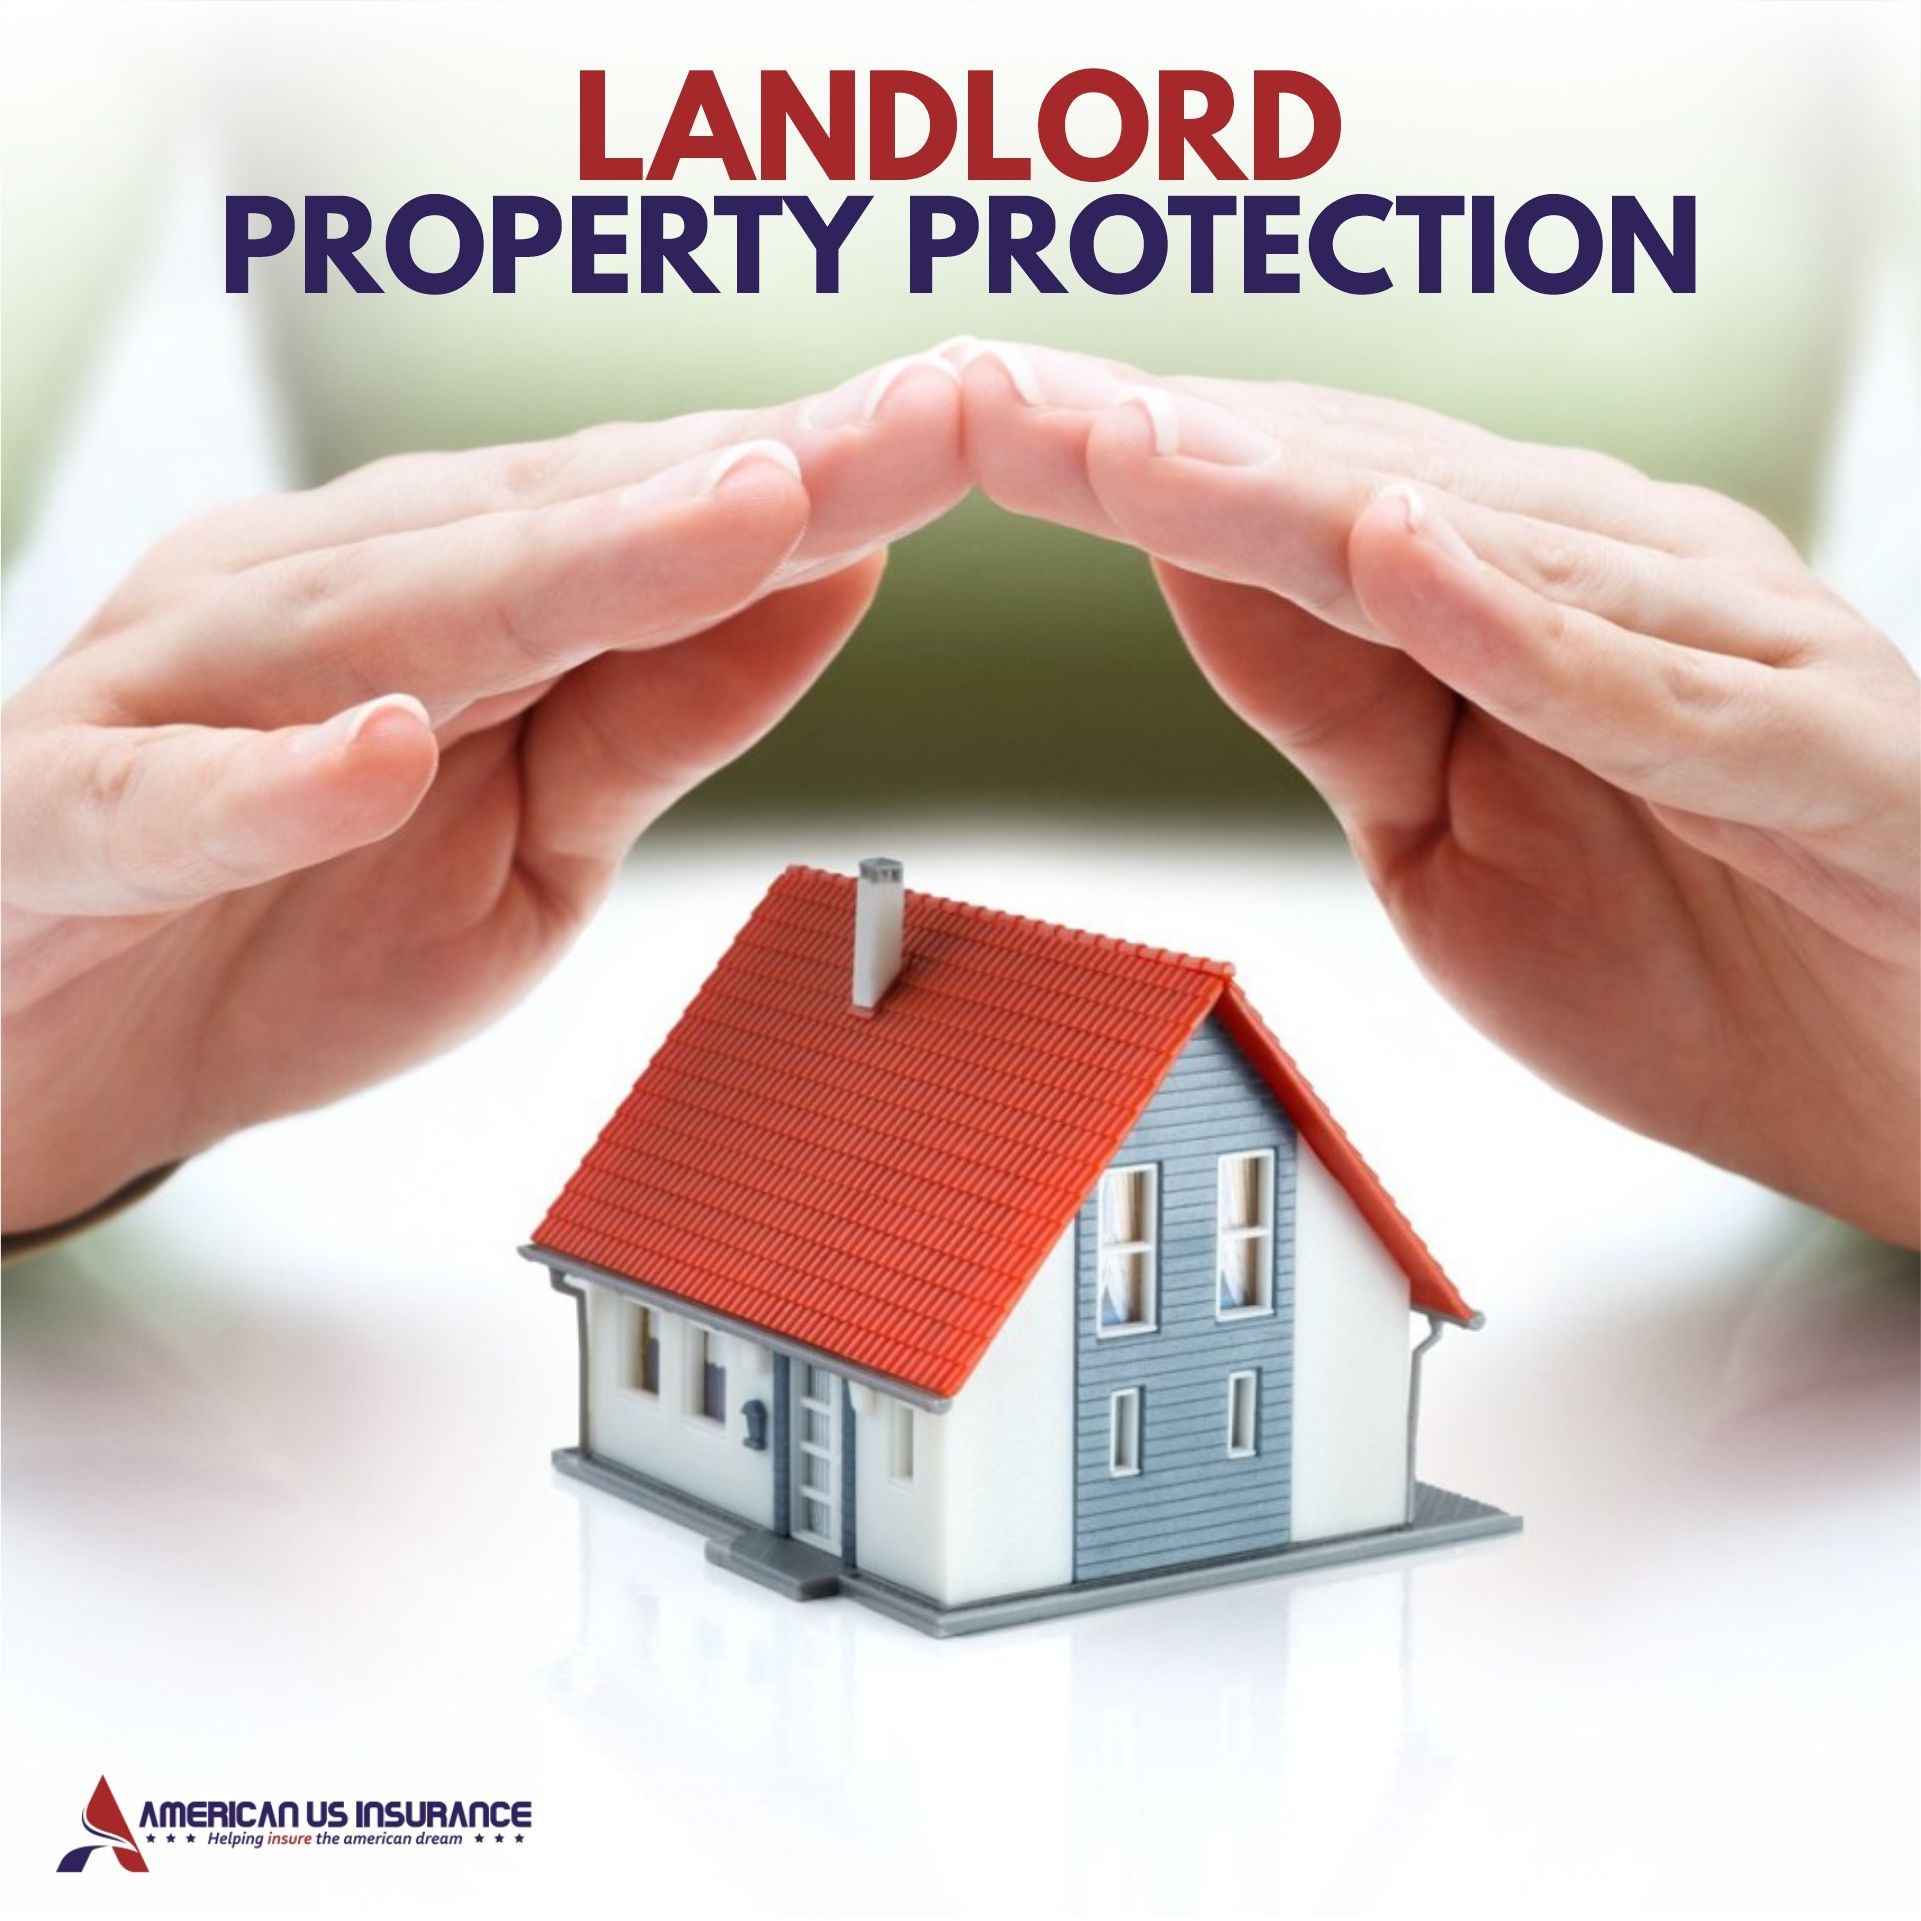 The property protection in a landlord insurance policy